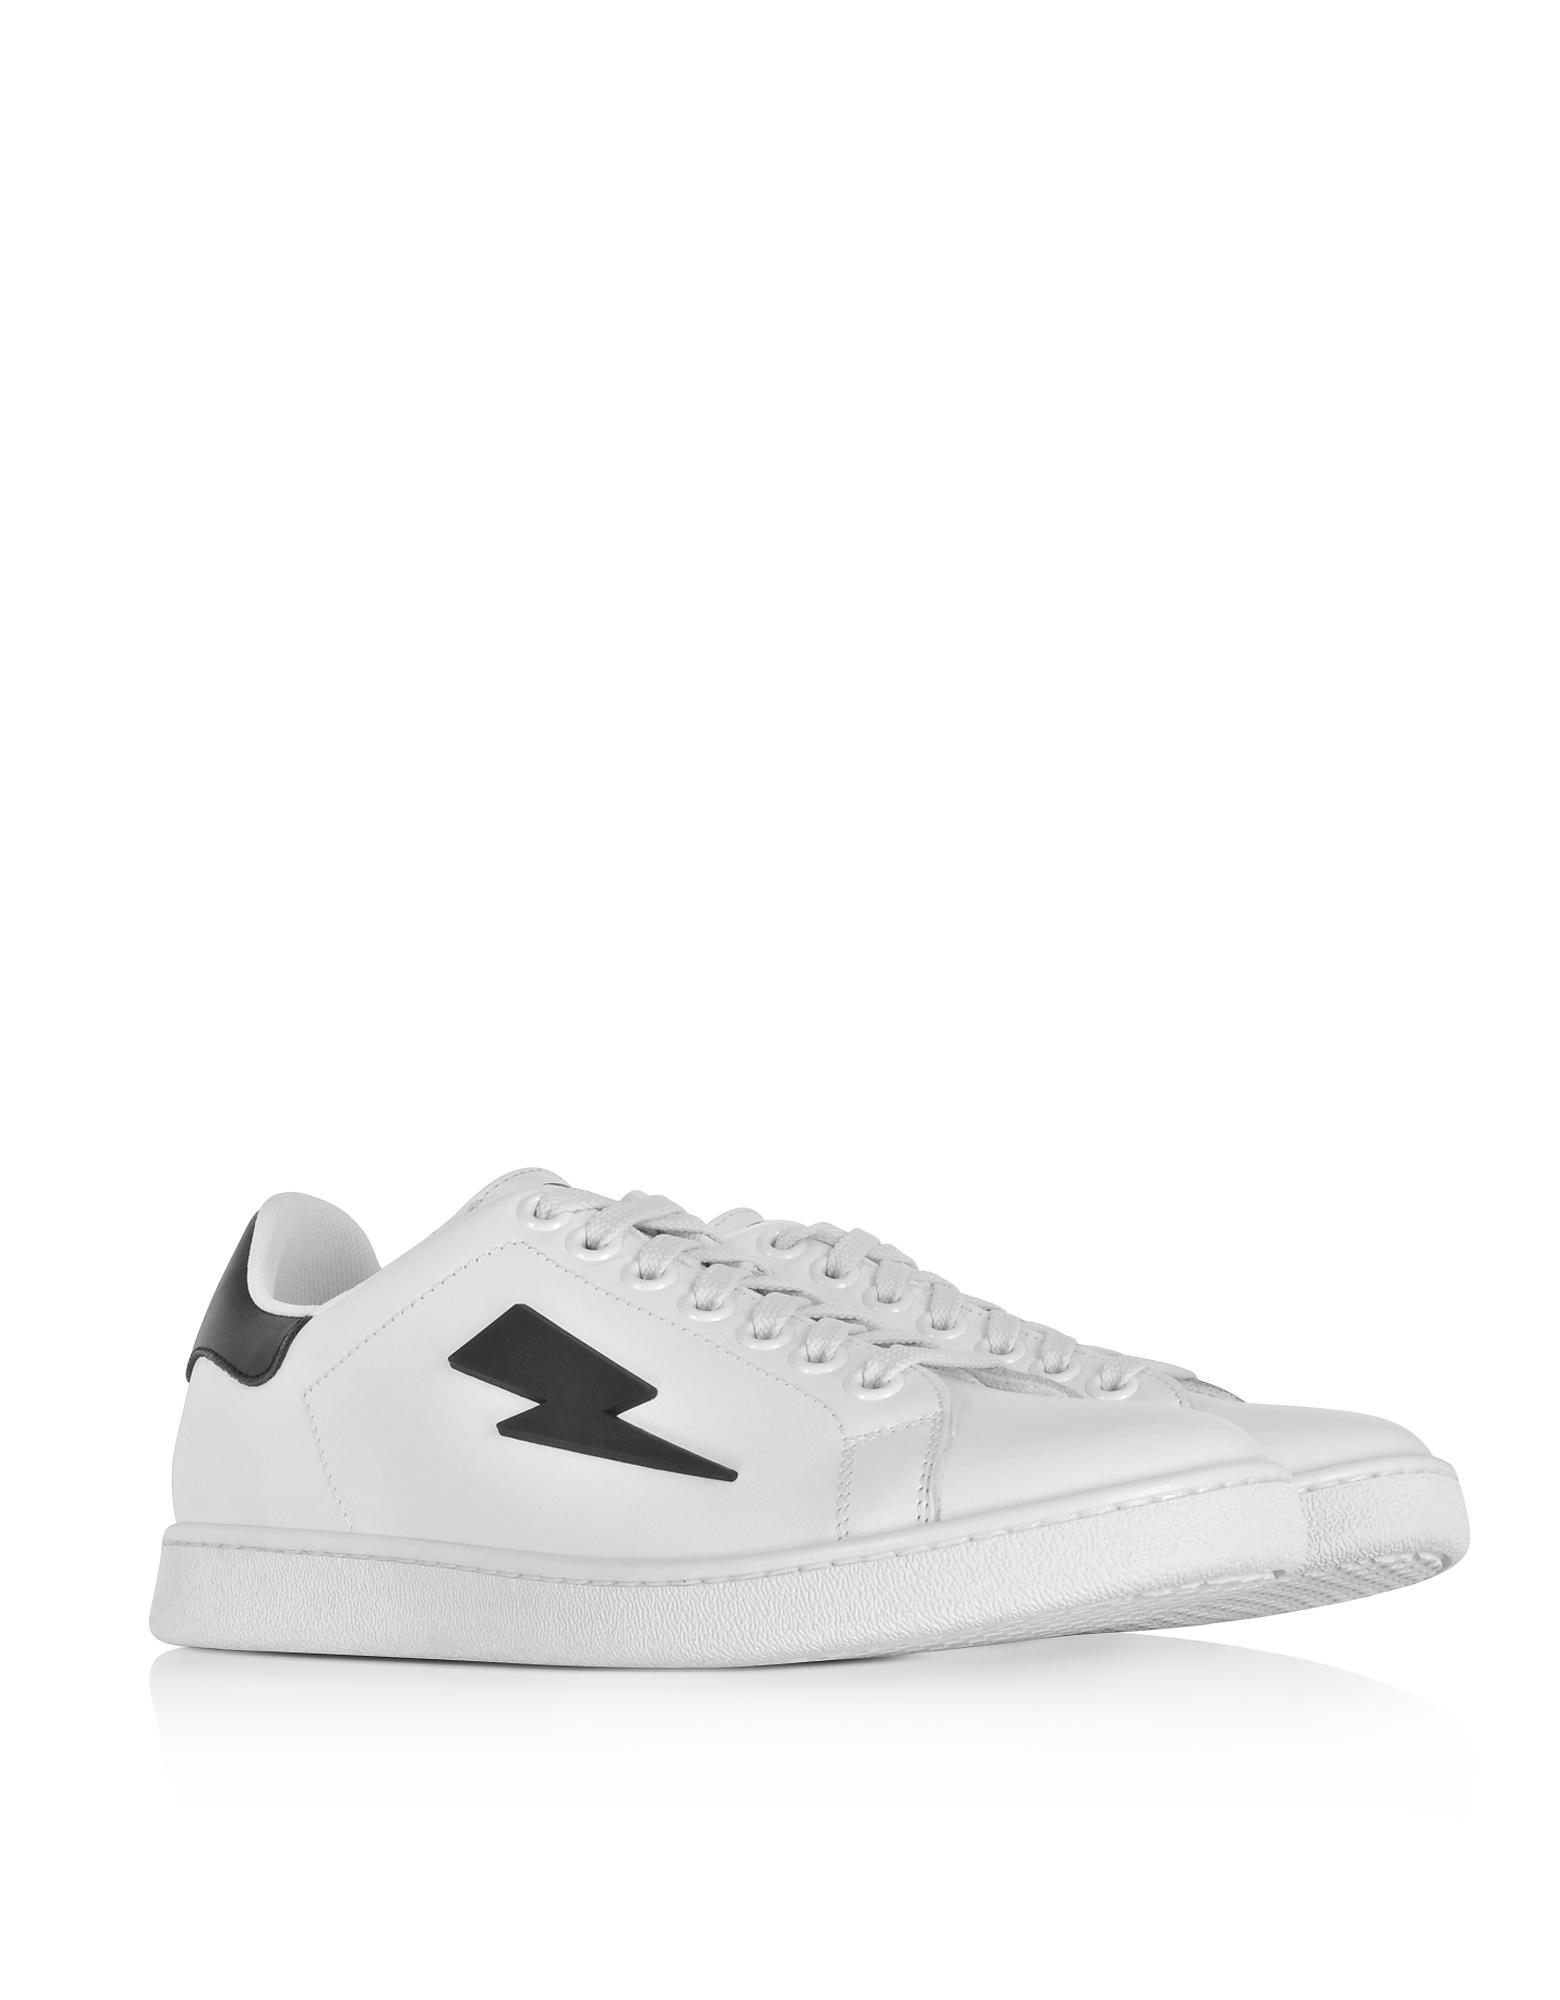 White Thunderbolt Tennis Sneakers Neil Barrett CWp6bU